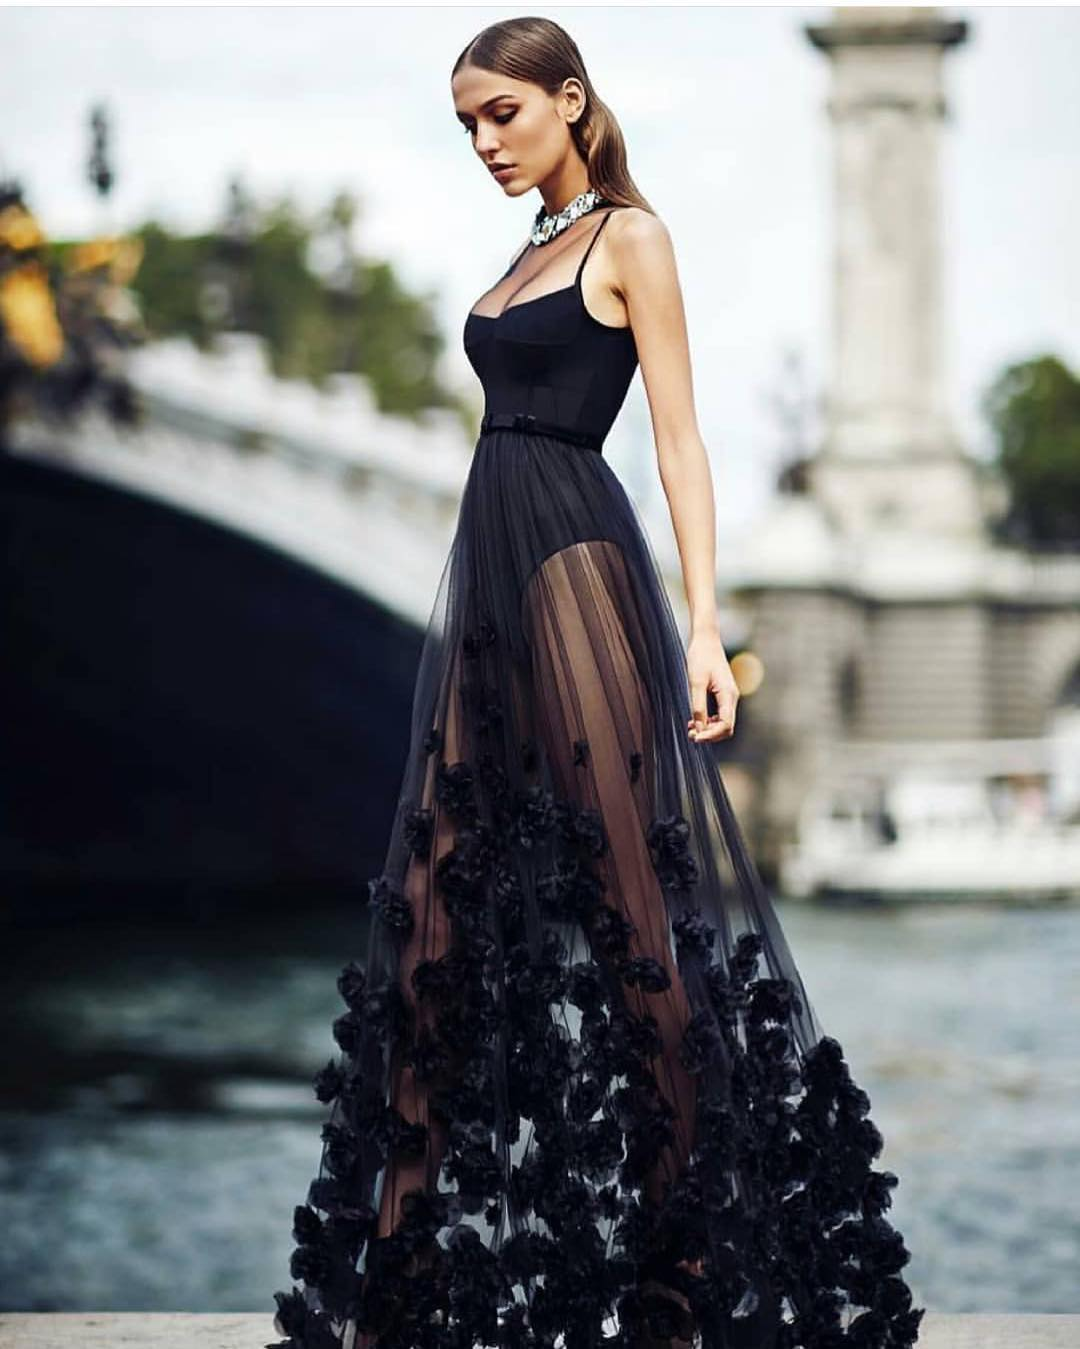 Black Bodysuit With Black Sheer Maxi Skirt For Special Evening Parties 2019